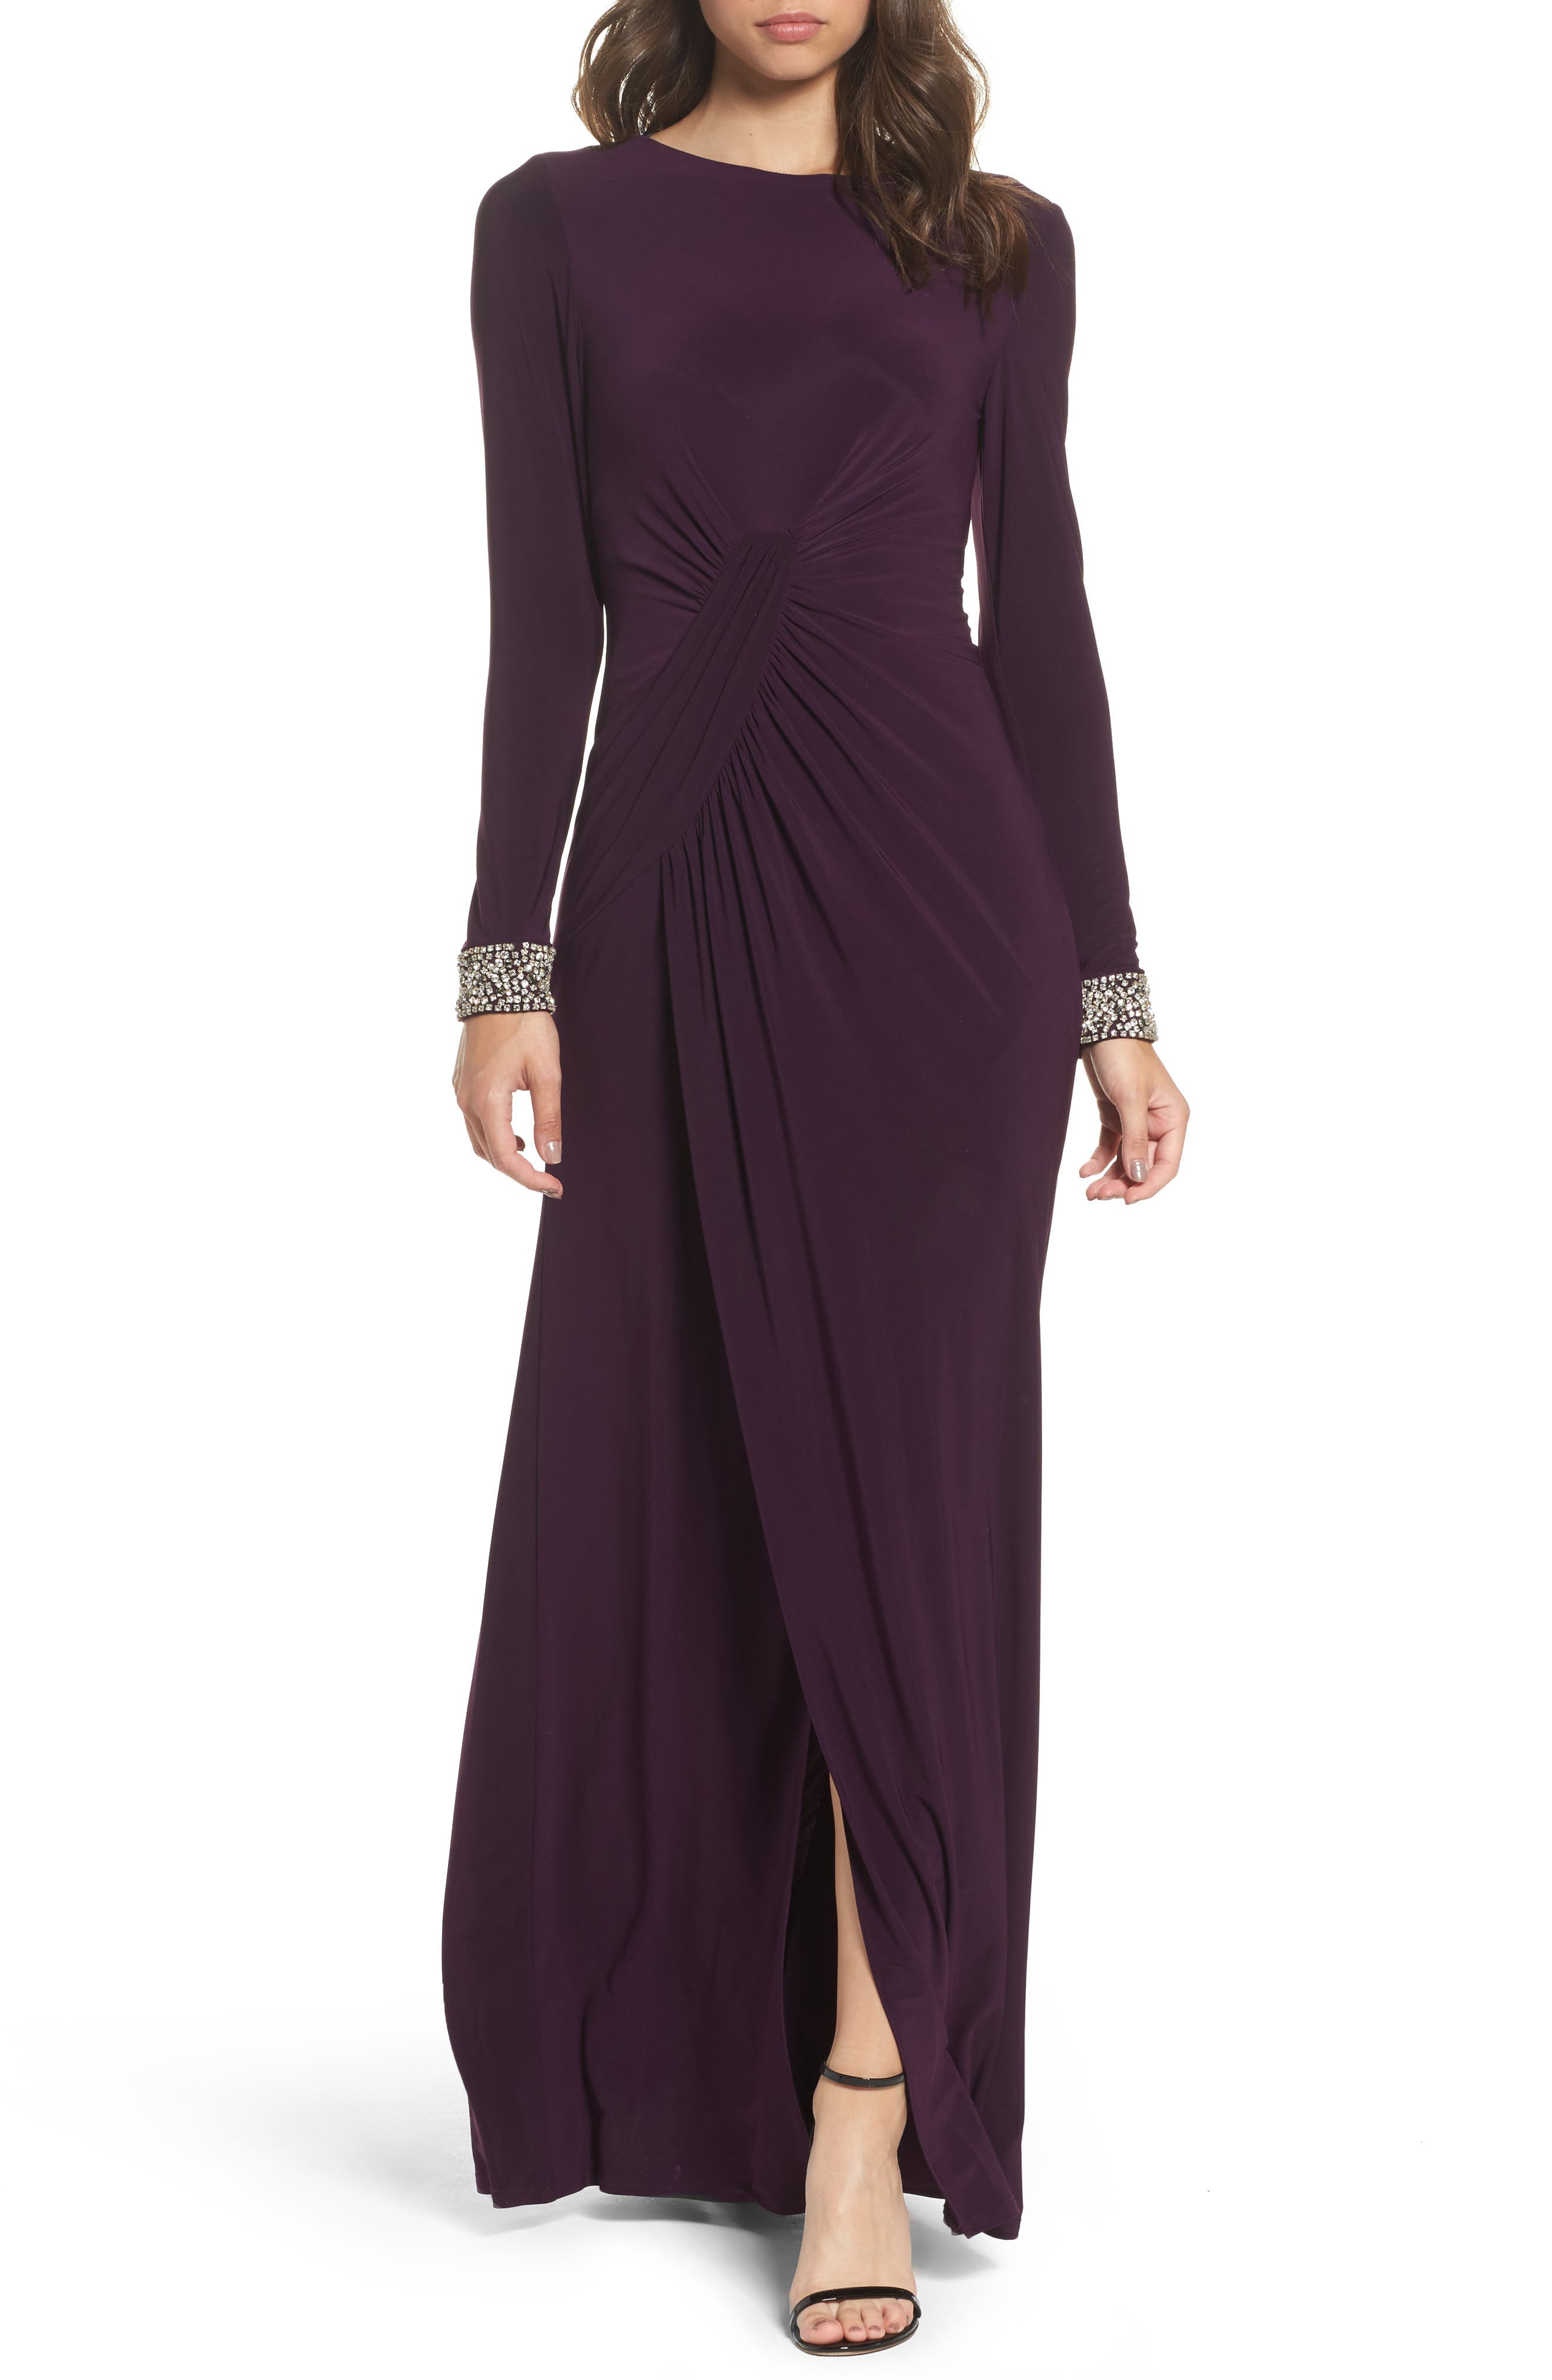 Alternate Image 1 Selected - Vince Camuto Beaded Cuff Ruched Jersey Gown